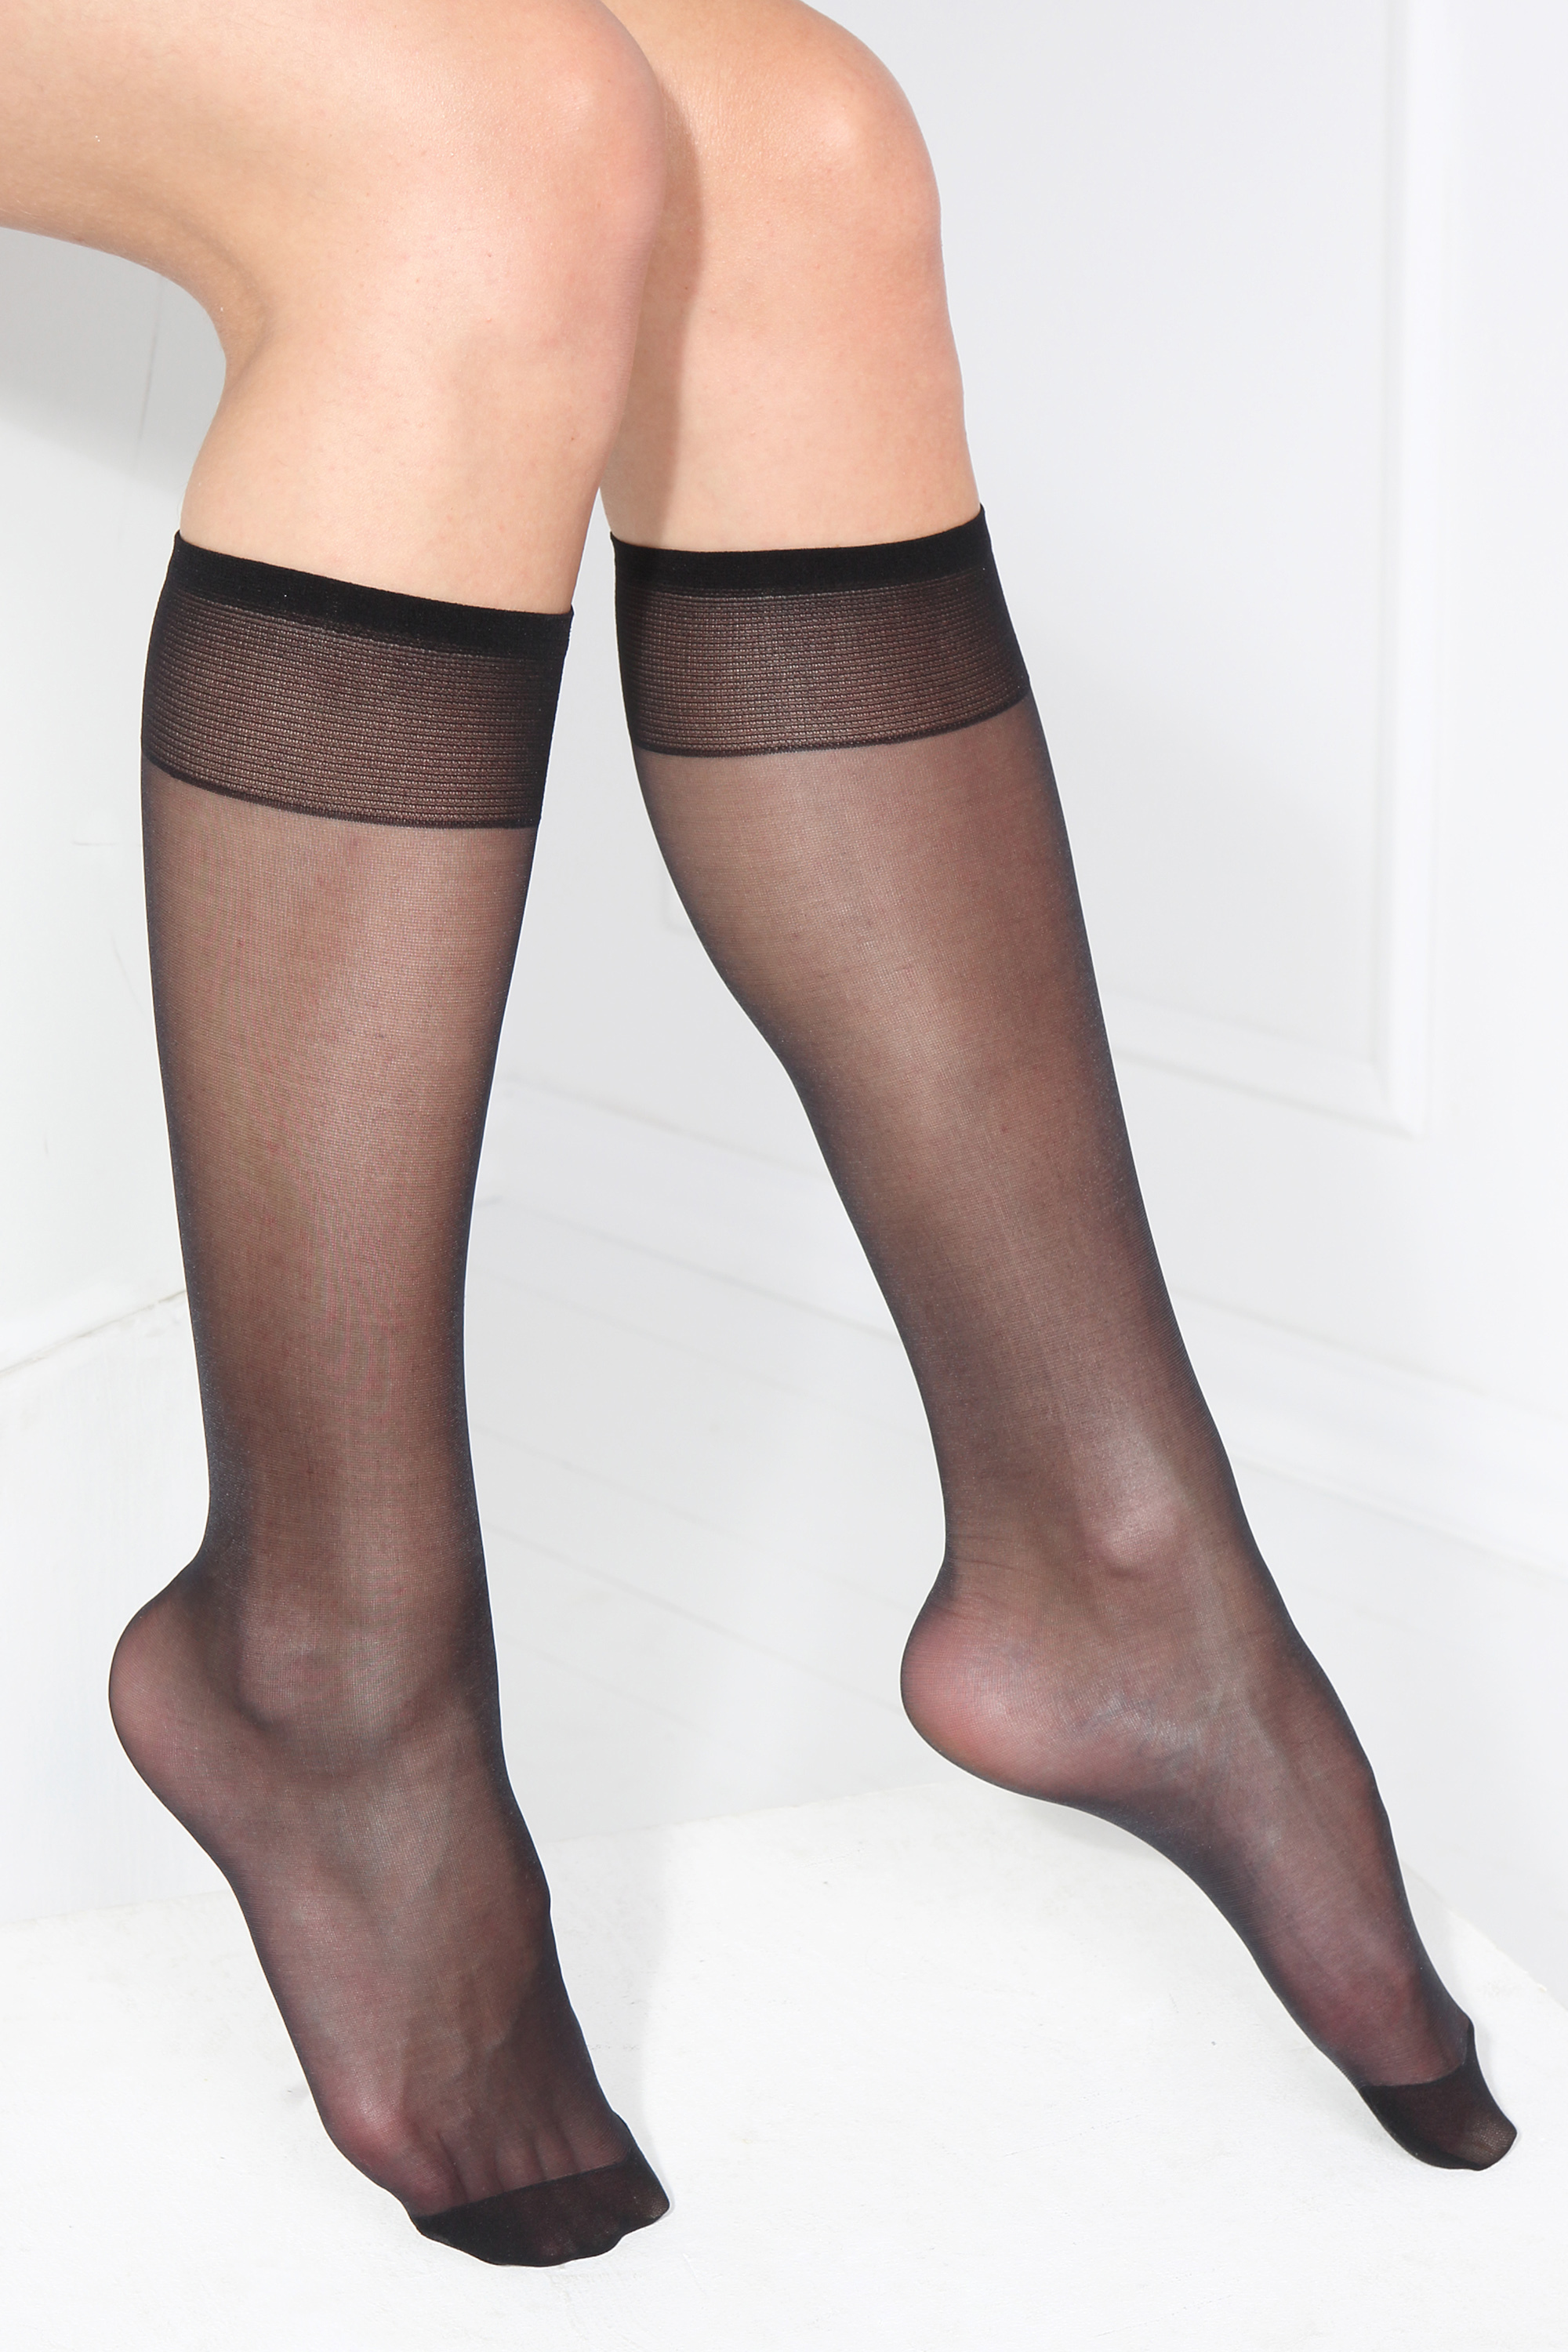 Smart Tights 30DEN black knee highs